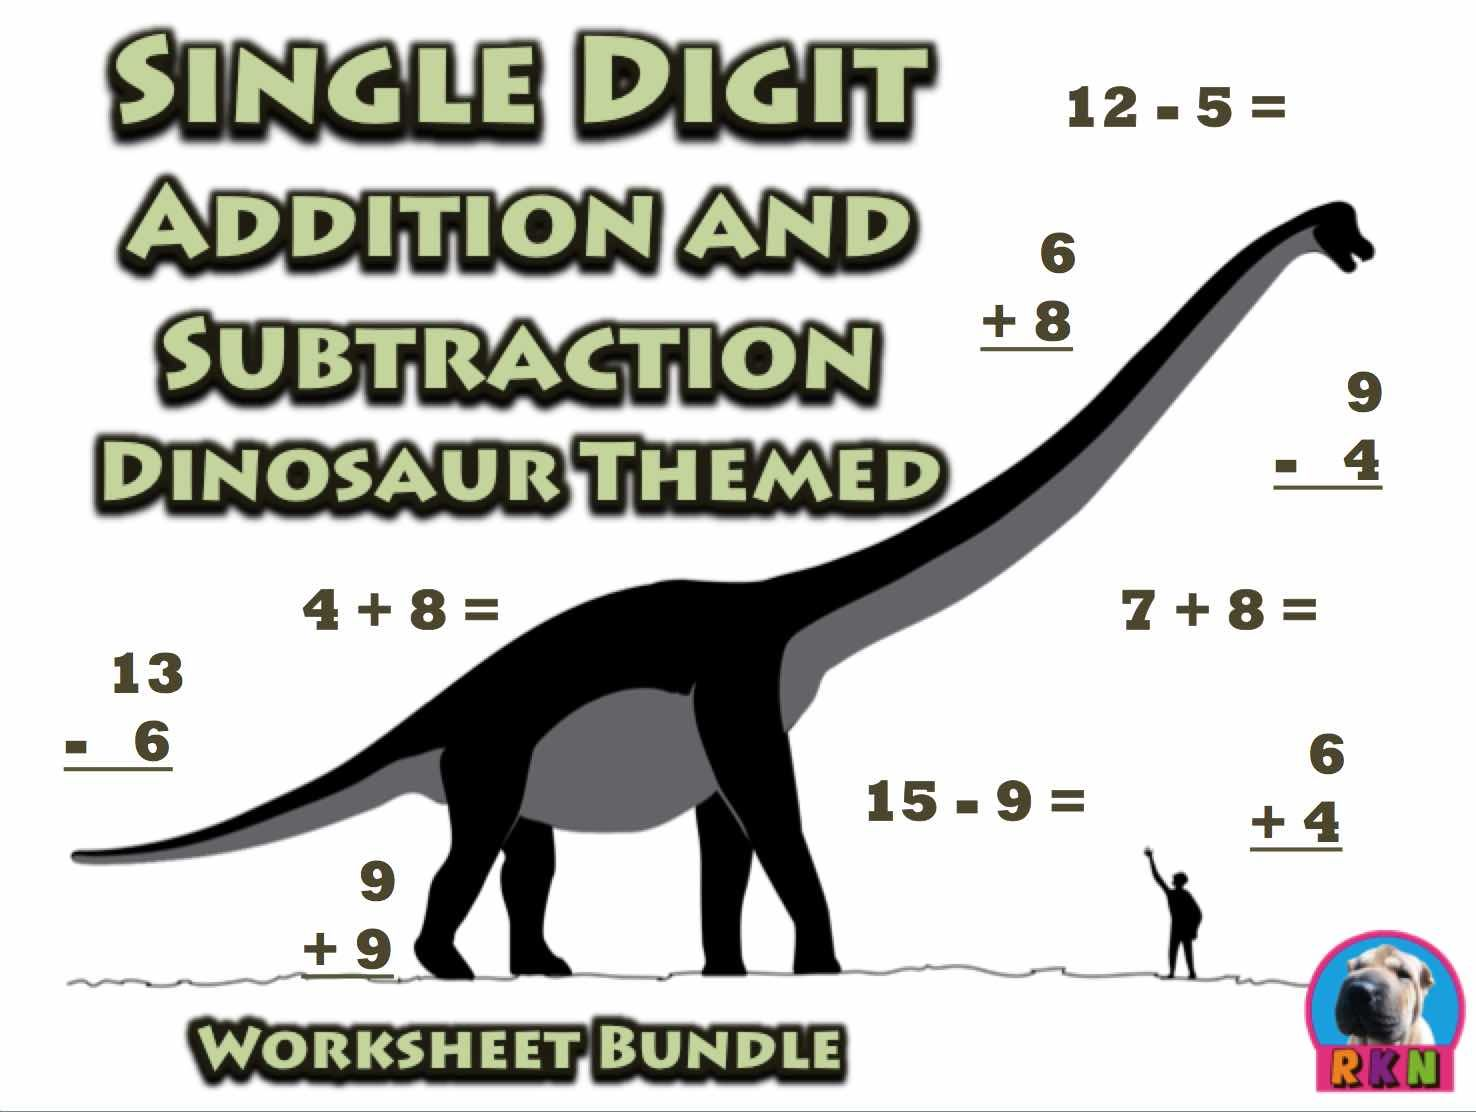 Single Digit Addition And Subtraction Worksheet Bundle